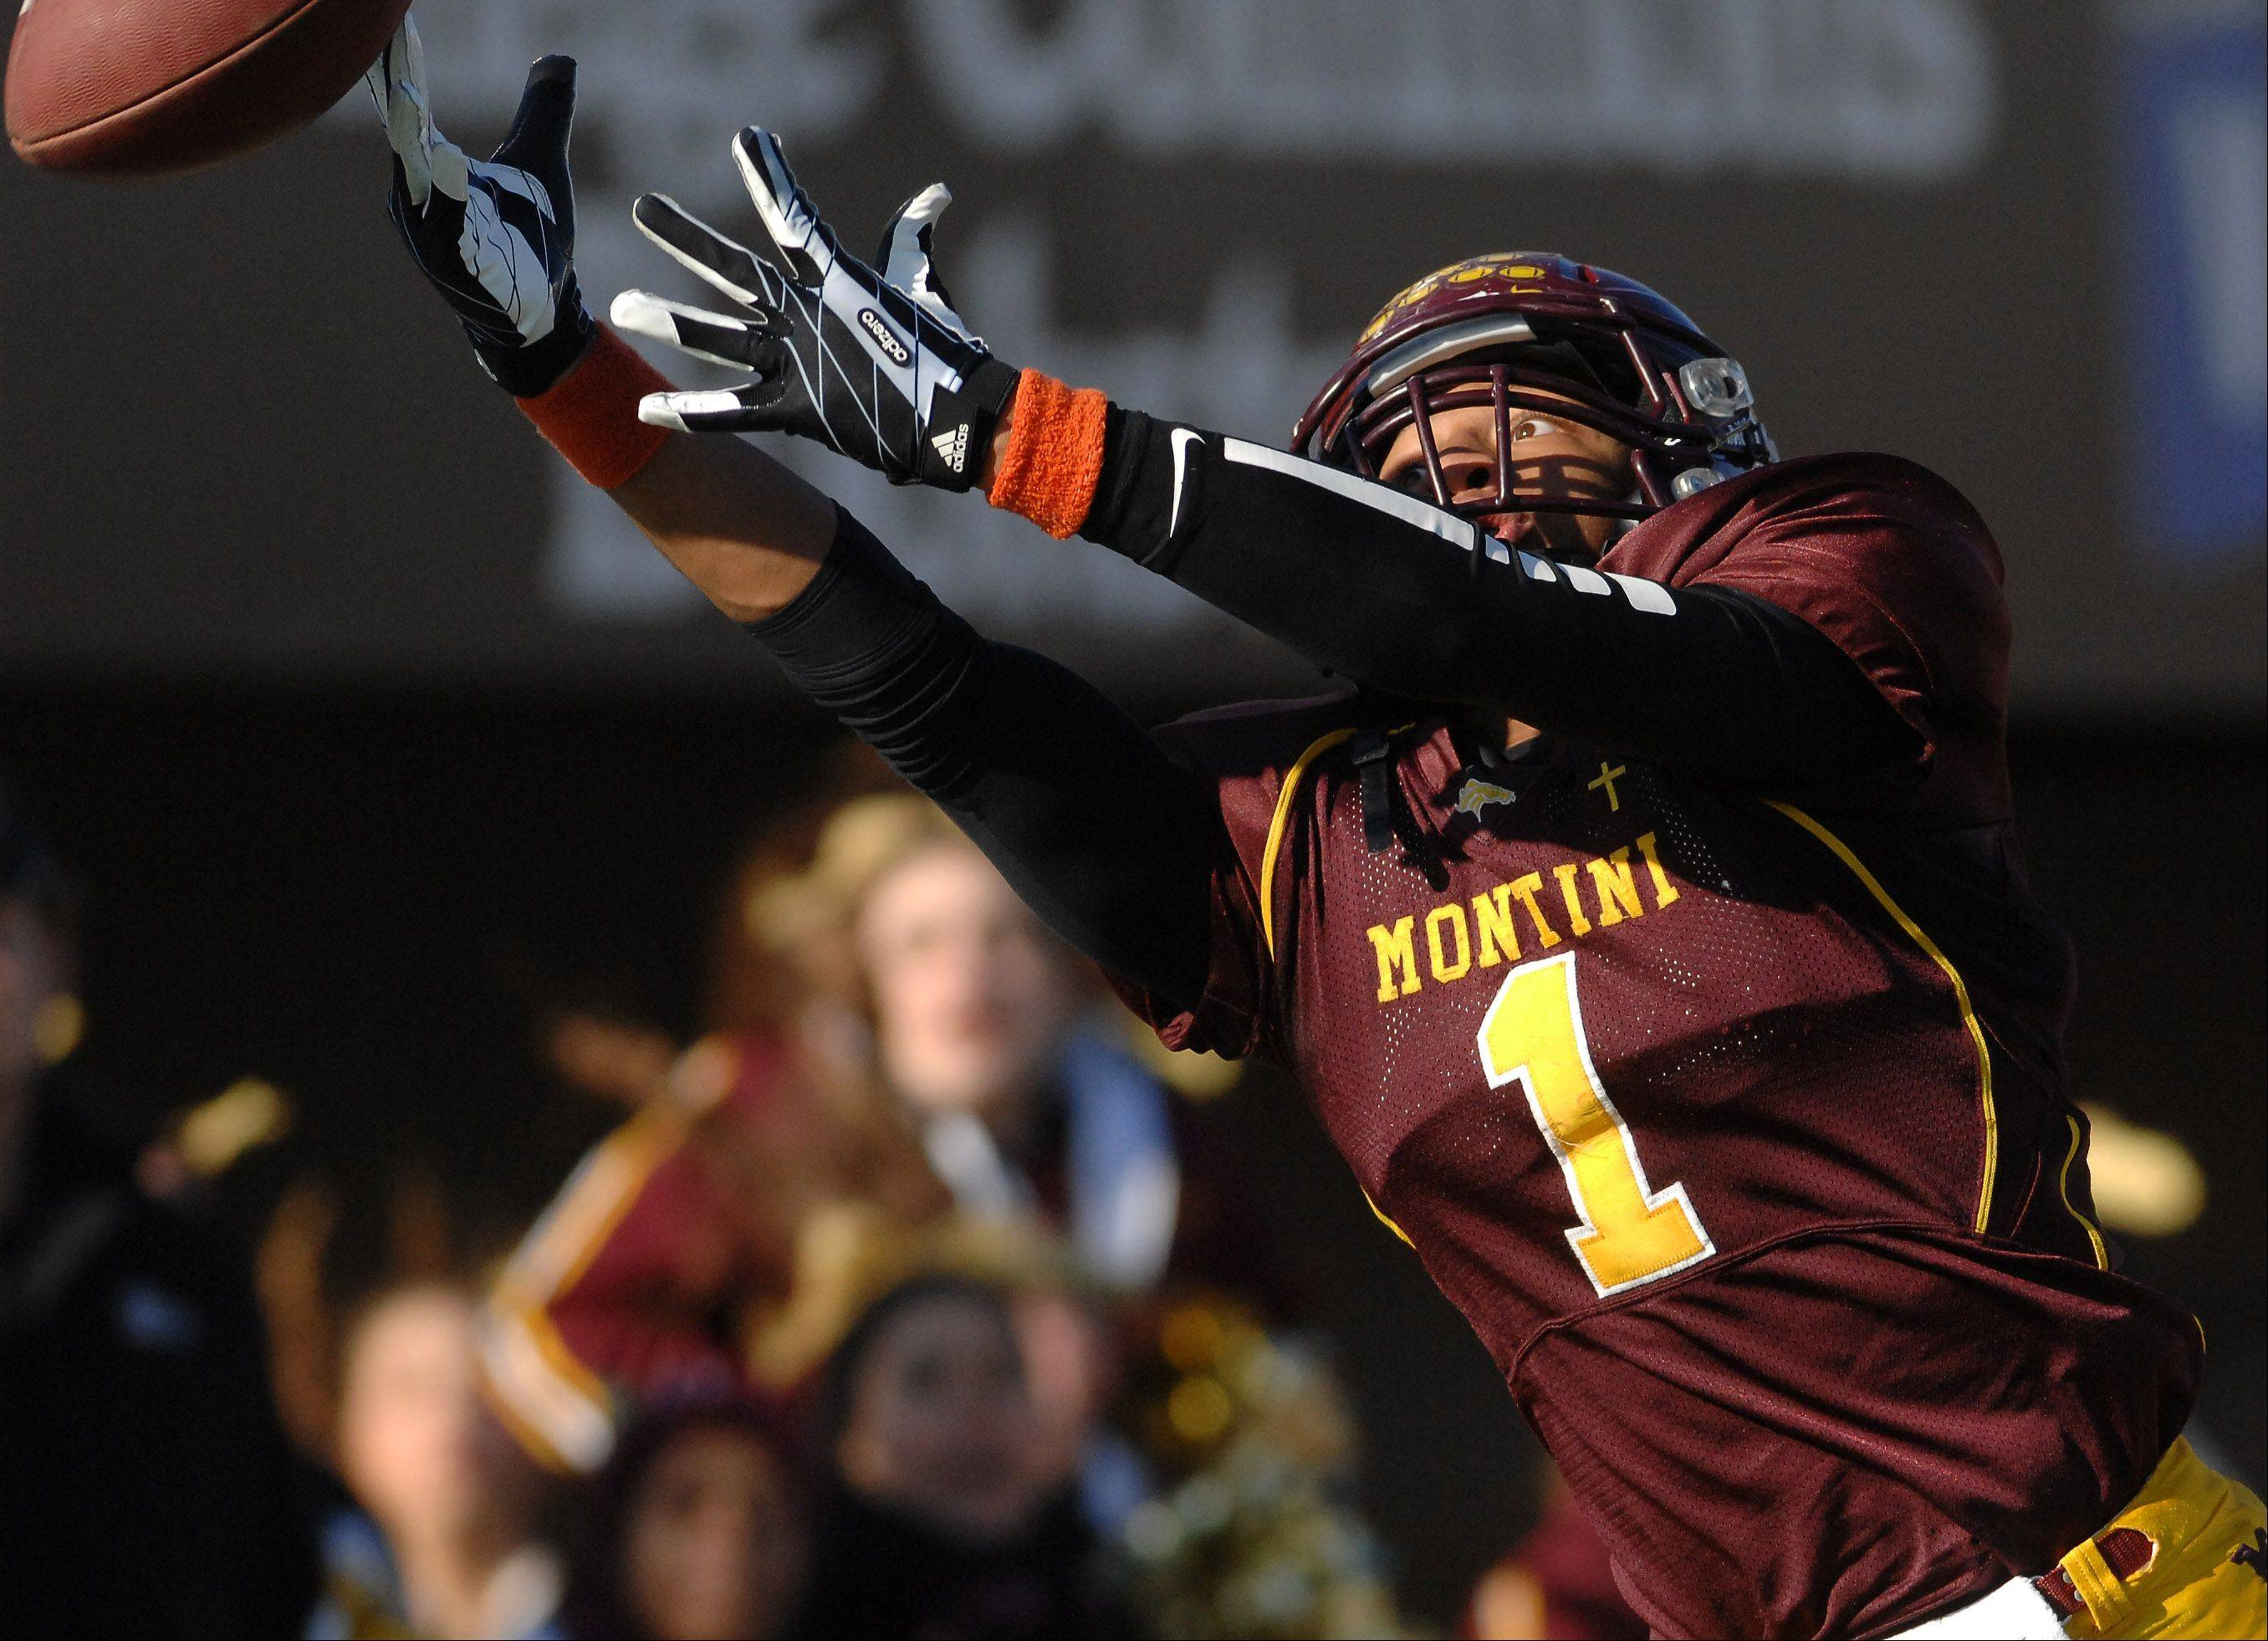 Montini's Leon Thornton III (1) just misses a catch in the end zone during Saturday's Class 5A championship football game in DeKalb.